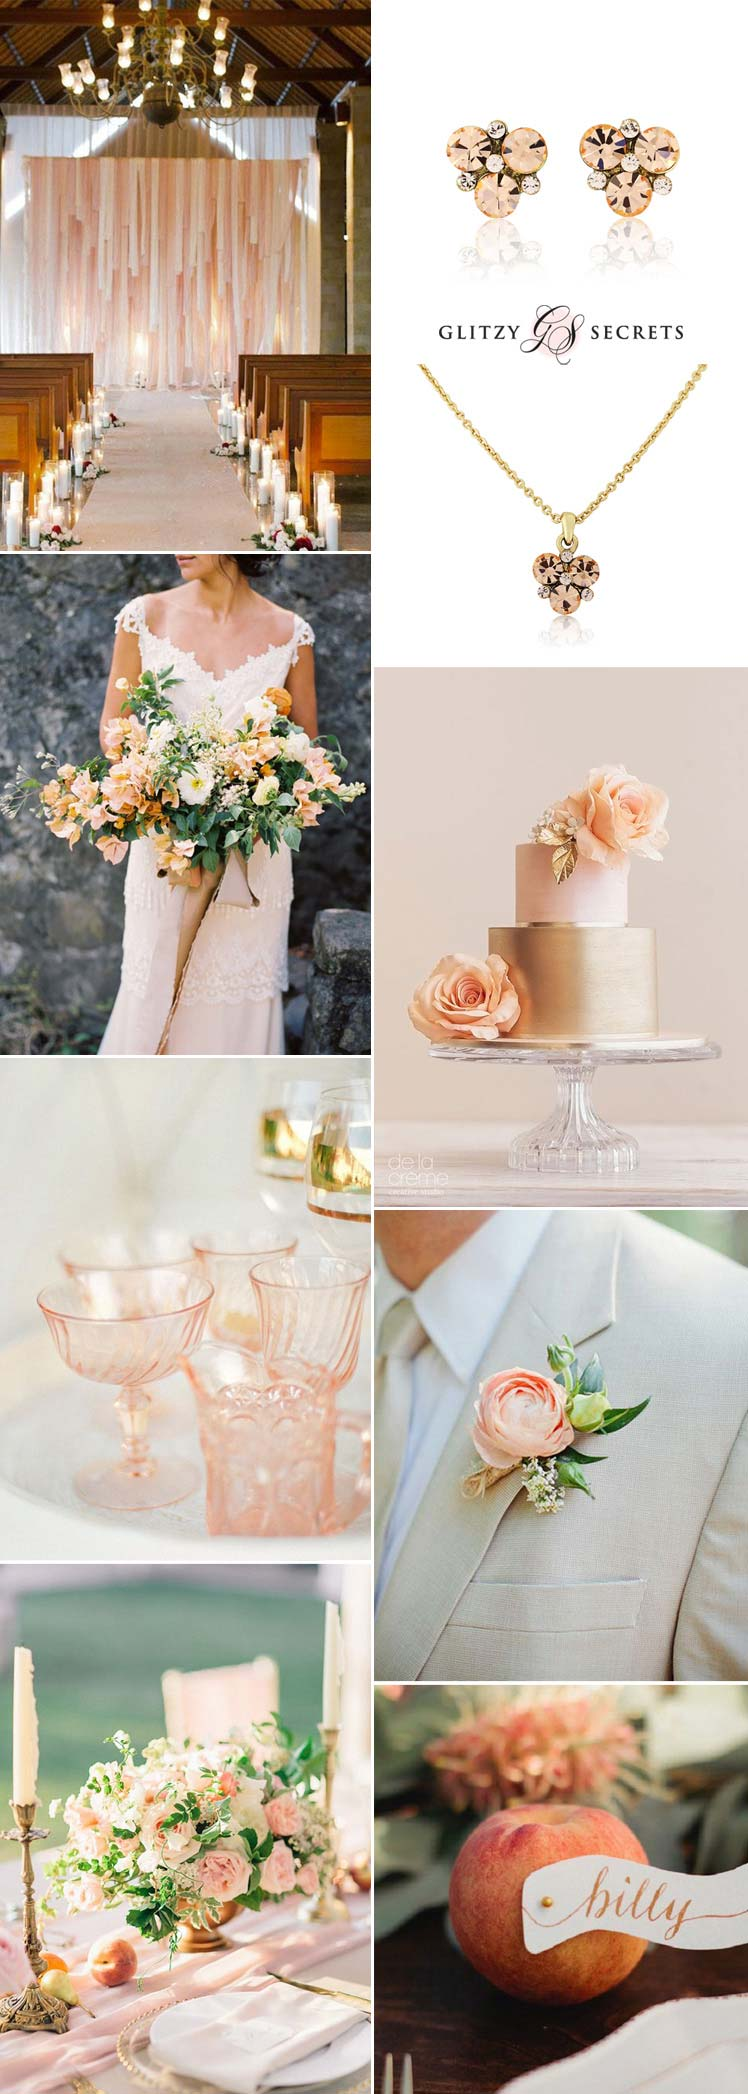 Gold and peach wedding theme inspiration